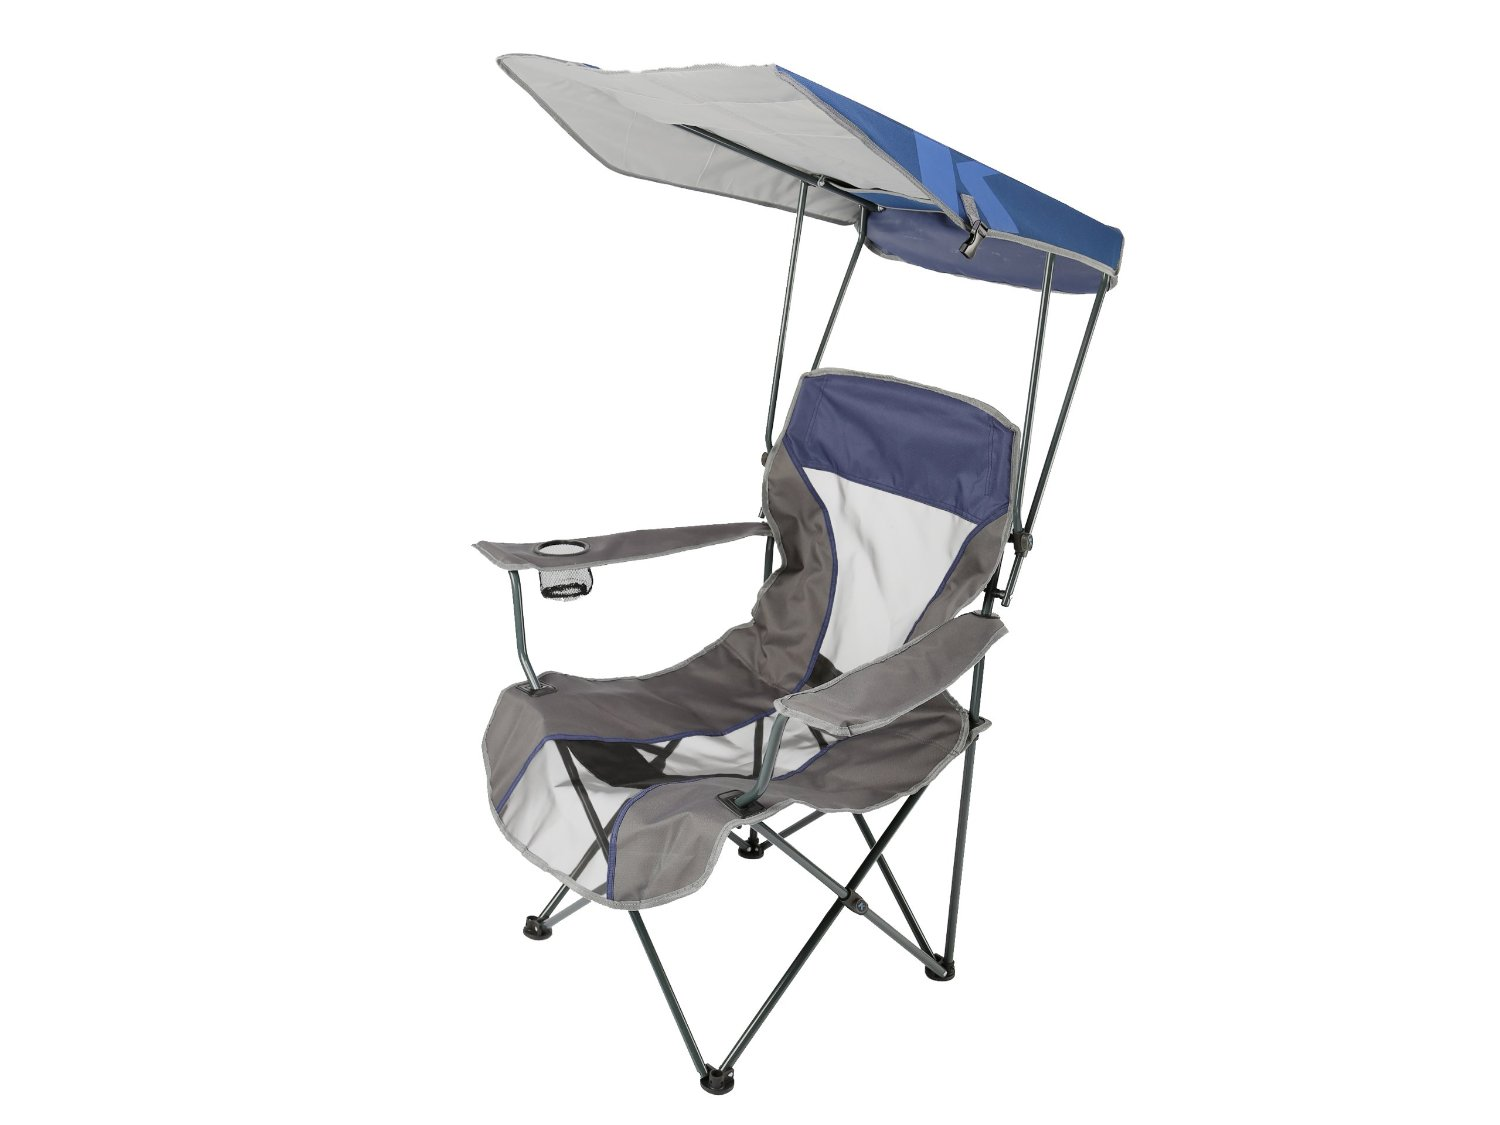 Camping Chairs With Canopy Swimways Premium Canopy Chair Navy Fitness And Sports